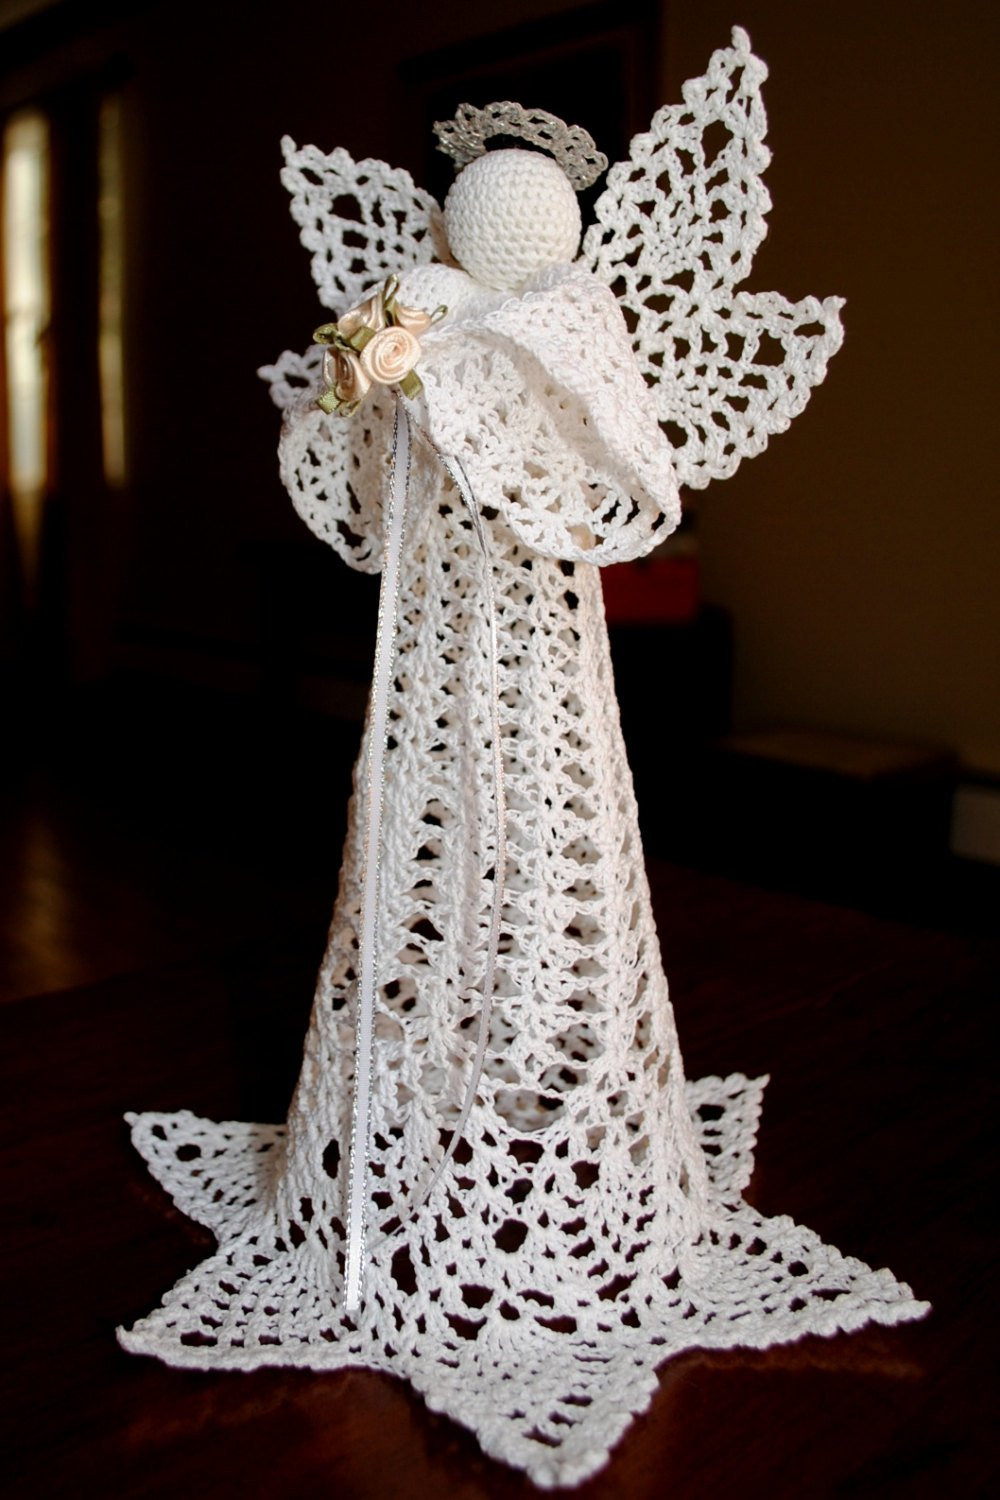 Crochet Angel Pattern Fresh Crochet Christmas Angel Tree topper White with A Silver Halo Of Brilliant 43 Pictures Crochet Angel Pattern